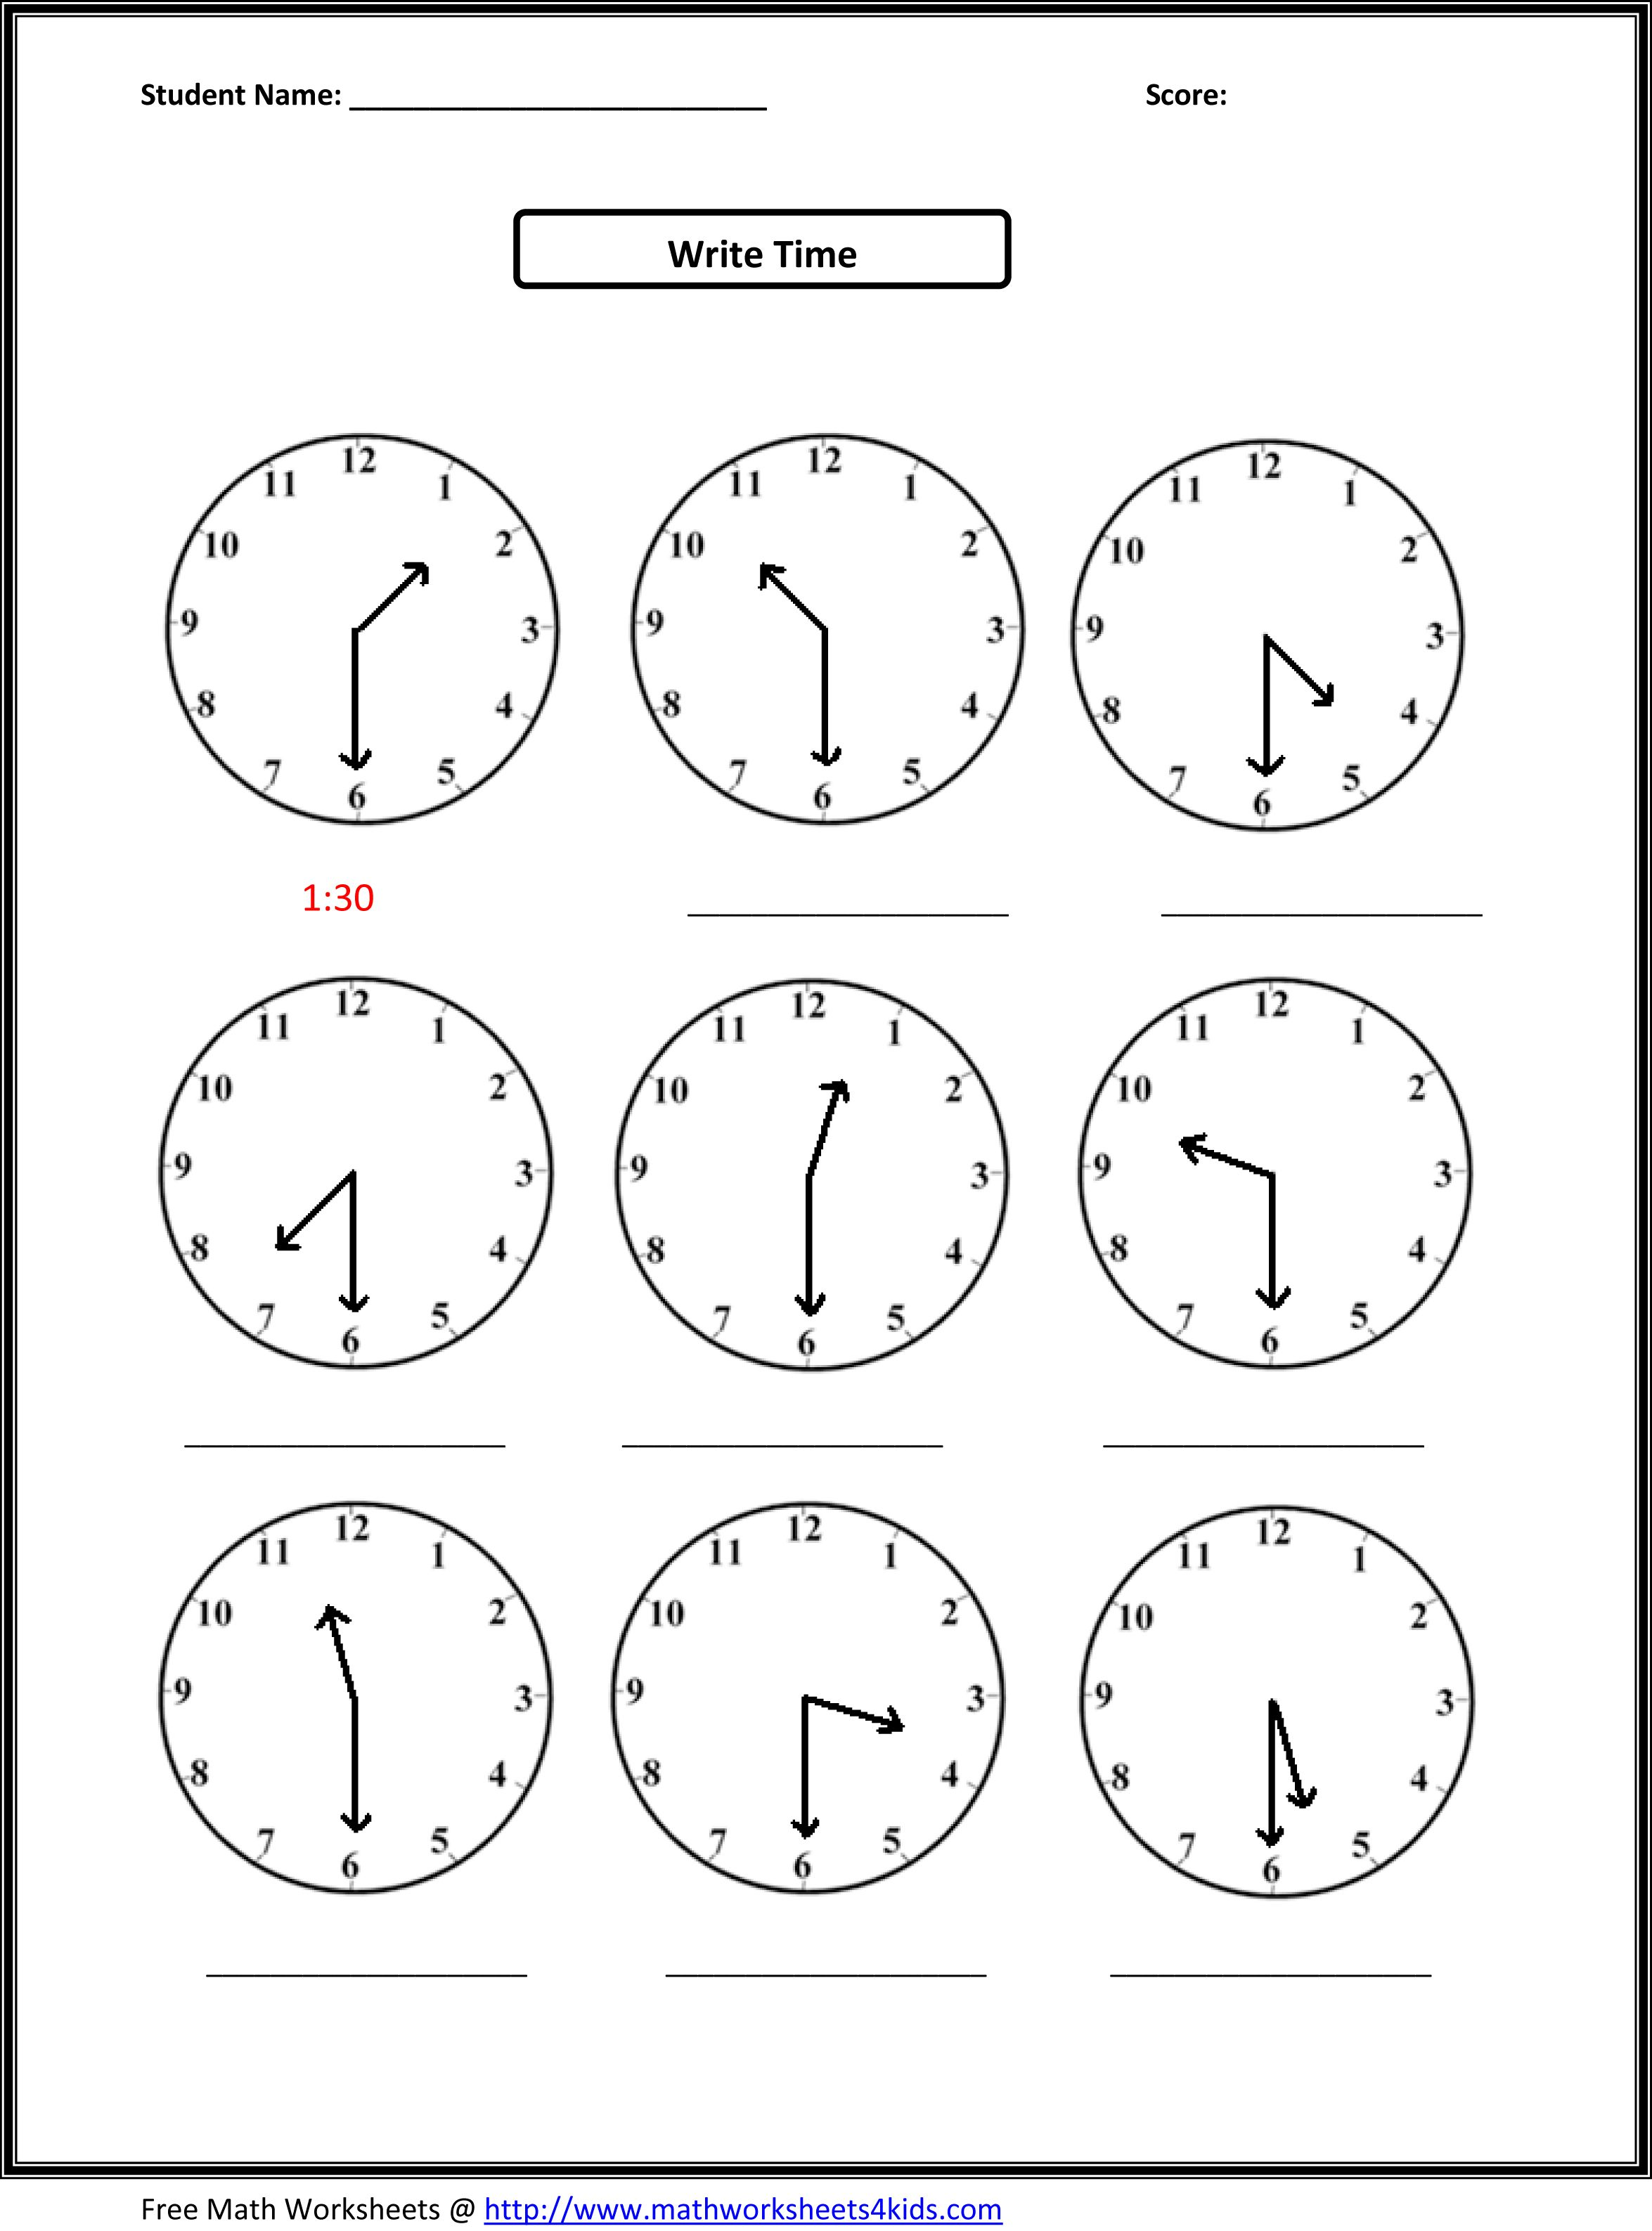 Weirdmailus  Picturesque Worksheet On Time For Grade   Reocurent With Magnificent Free Printable Telling Time Worksheets Nd Grade  Reocurent With Beauteous What I Did Over Winter Break Worksheet Also Beginning Geometry Worksheets Free In Addition Spanish American War Worksheet And Nervous System Review Worksheet As Well As Math Worksheets Simplifying Fractions Additionally Doc Mcstuffins Worksheets From Reocurentcom With Weirdmailus  Magnificent Worksheet On Time For Grade   Reocurent With Beauteous Free Printable Telling Time Worksheets Nd Grade  Reocurent And Picturesque What I Did Over Winter Break Worksheet Also Beginning Geometry Worksheets Free In Addition Spanish American War Worksheet From Reocurentcom